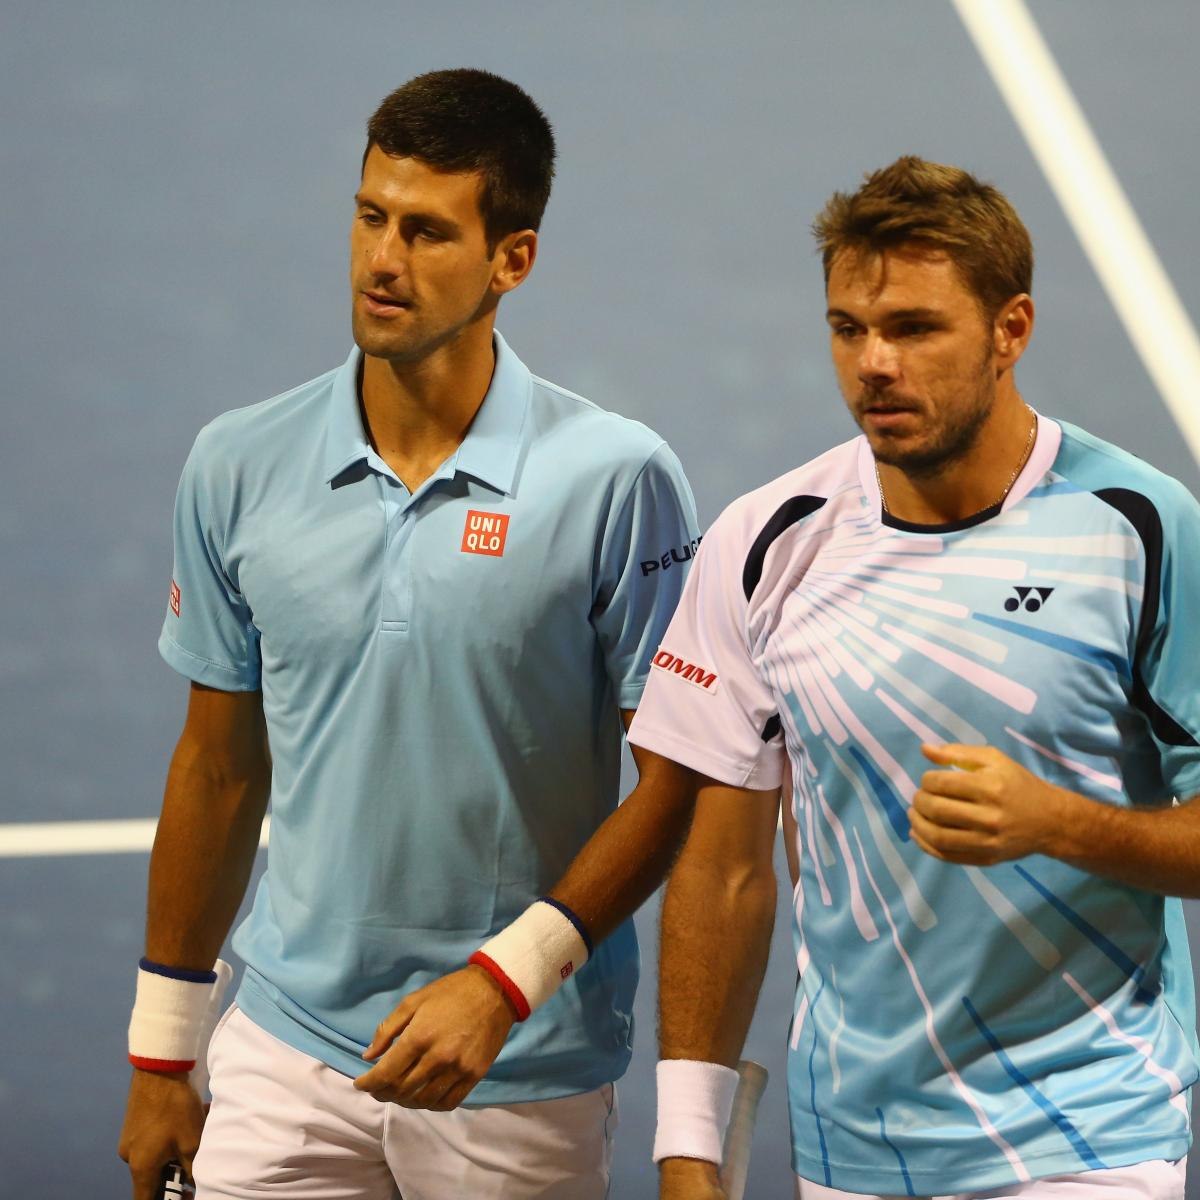 Rogers Cup 2014: The Best and Worst Dressed in Canada | Bleacher ...